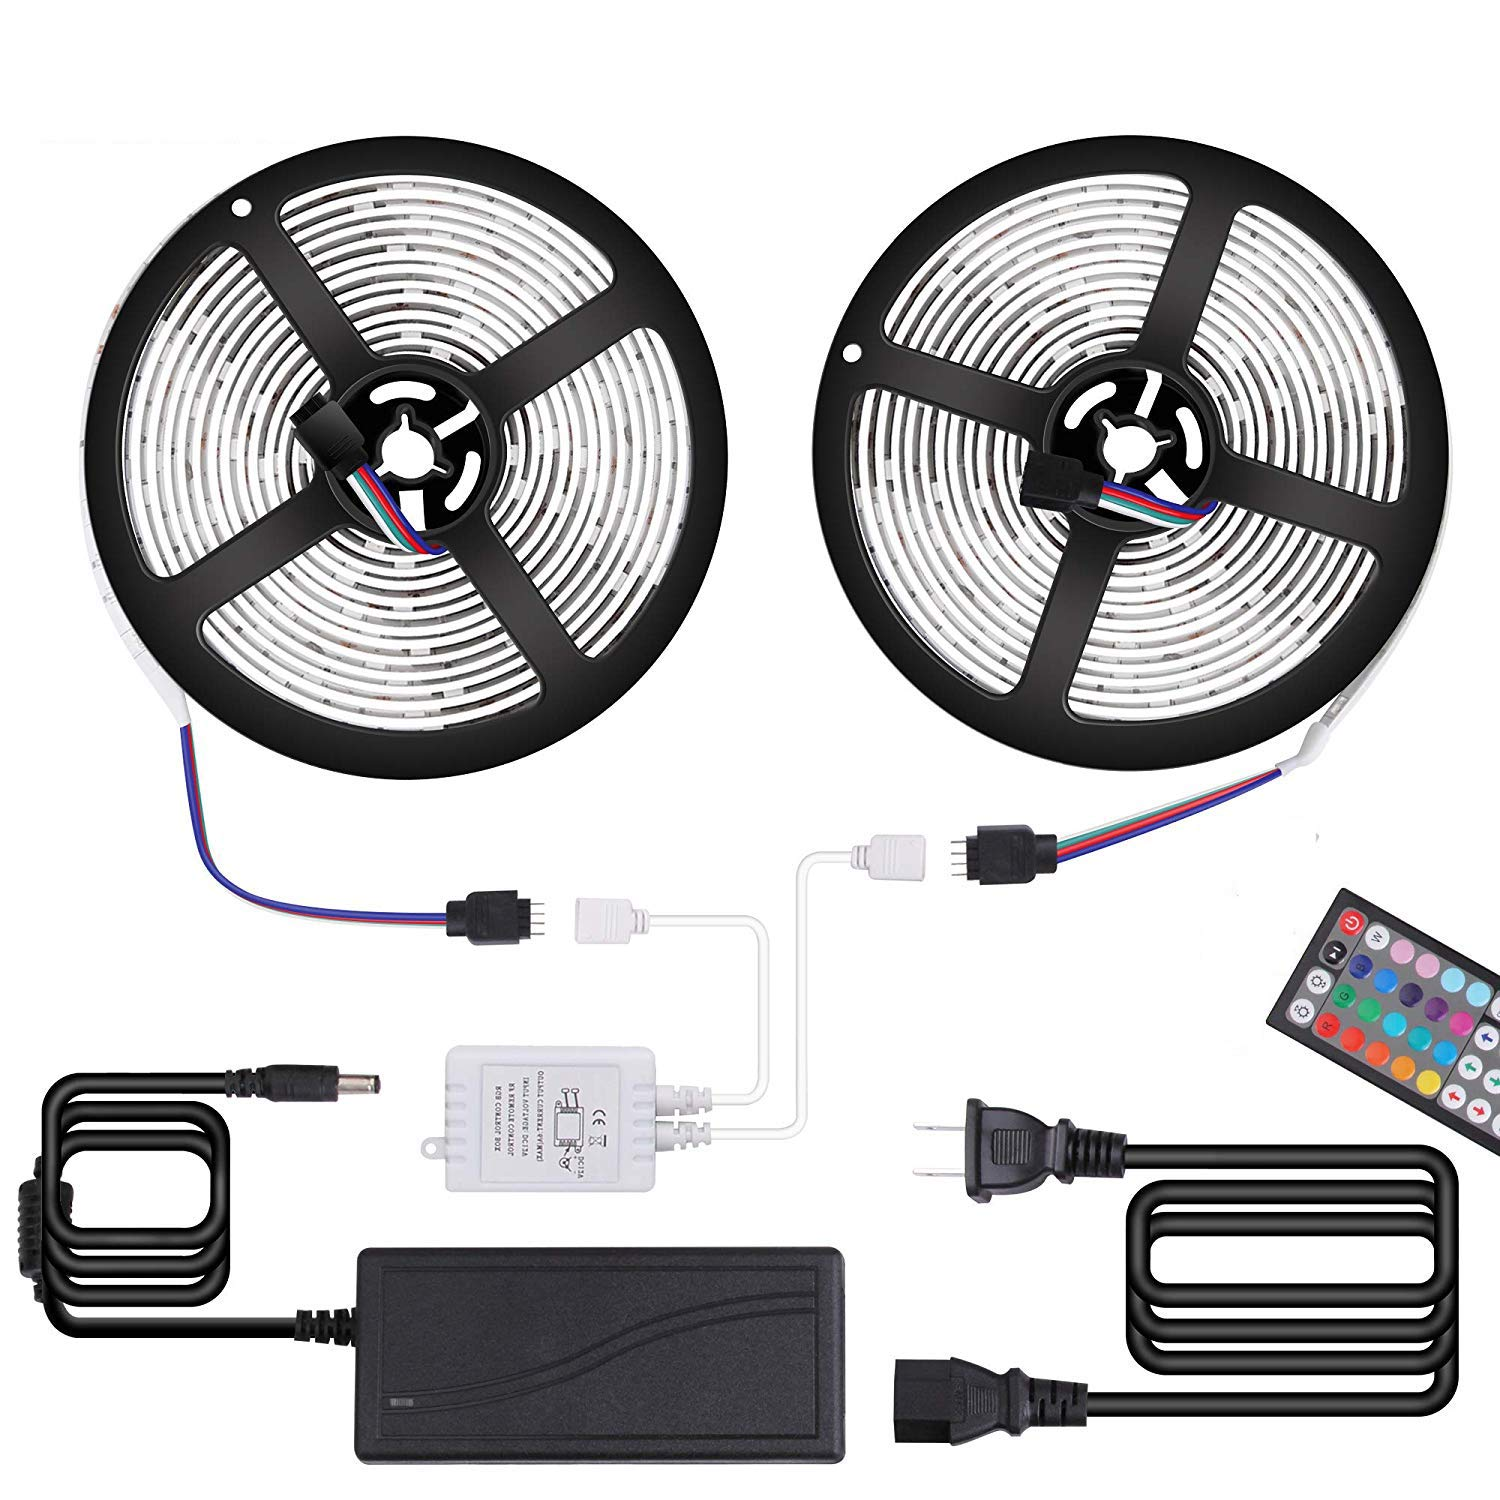 Targherle Led Strip Lights Led Light Strip DC12V 33Ft 10M 300leds Waterproof IP65 5050 SMD RGB LED Flexible Strip Light with 44key RF Remote Controller Double Sided Foam Tape and 5A Adapter